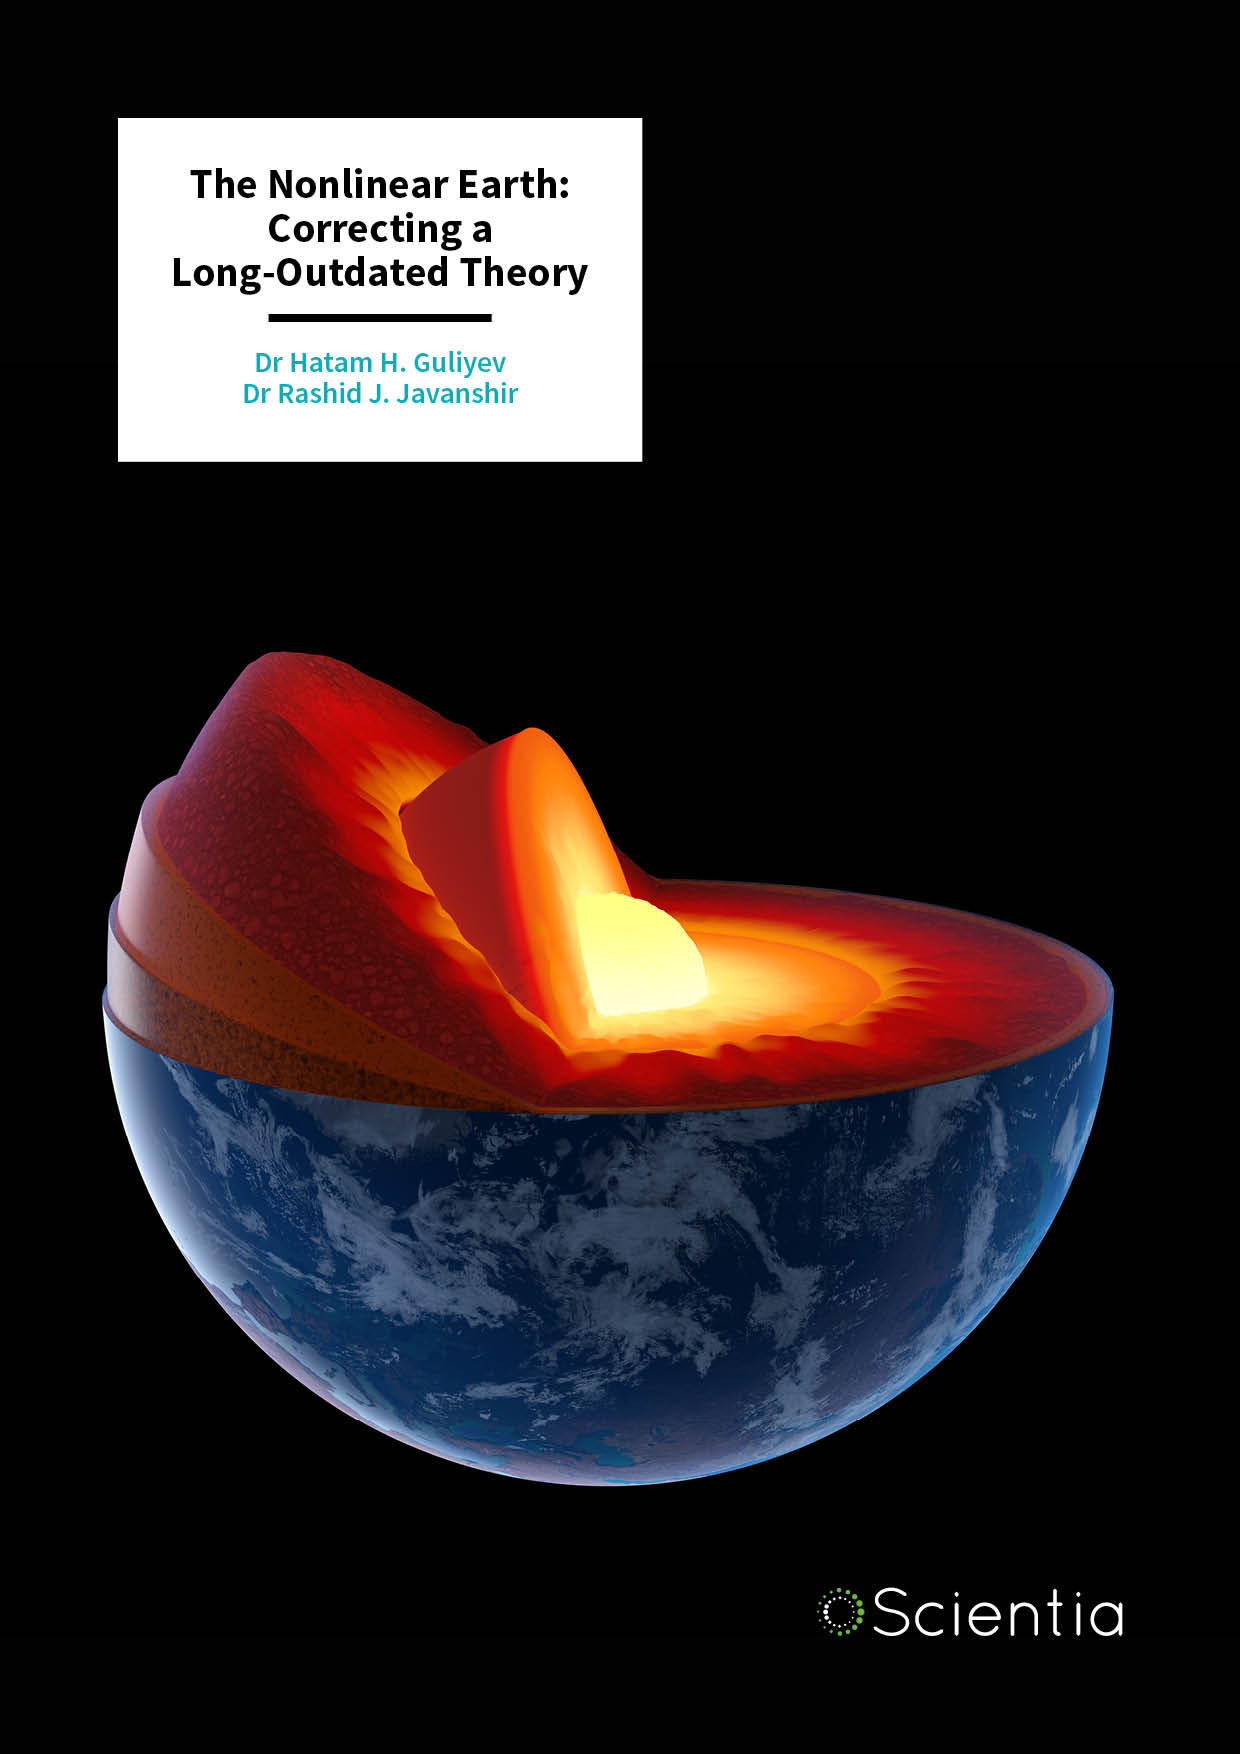 Dr Hatam Guliyev | Dr Rashid Javanshir – The Nonlinear Earth: Correcting a Long-Outdated Theory